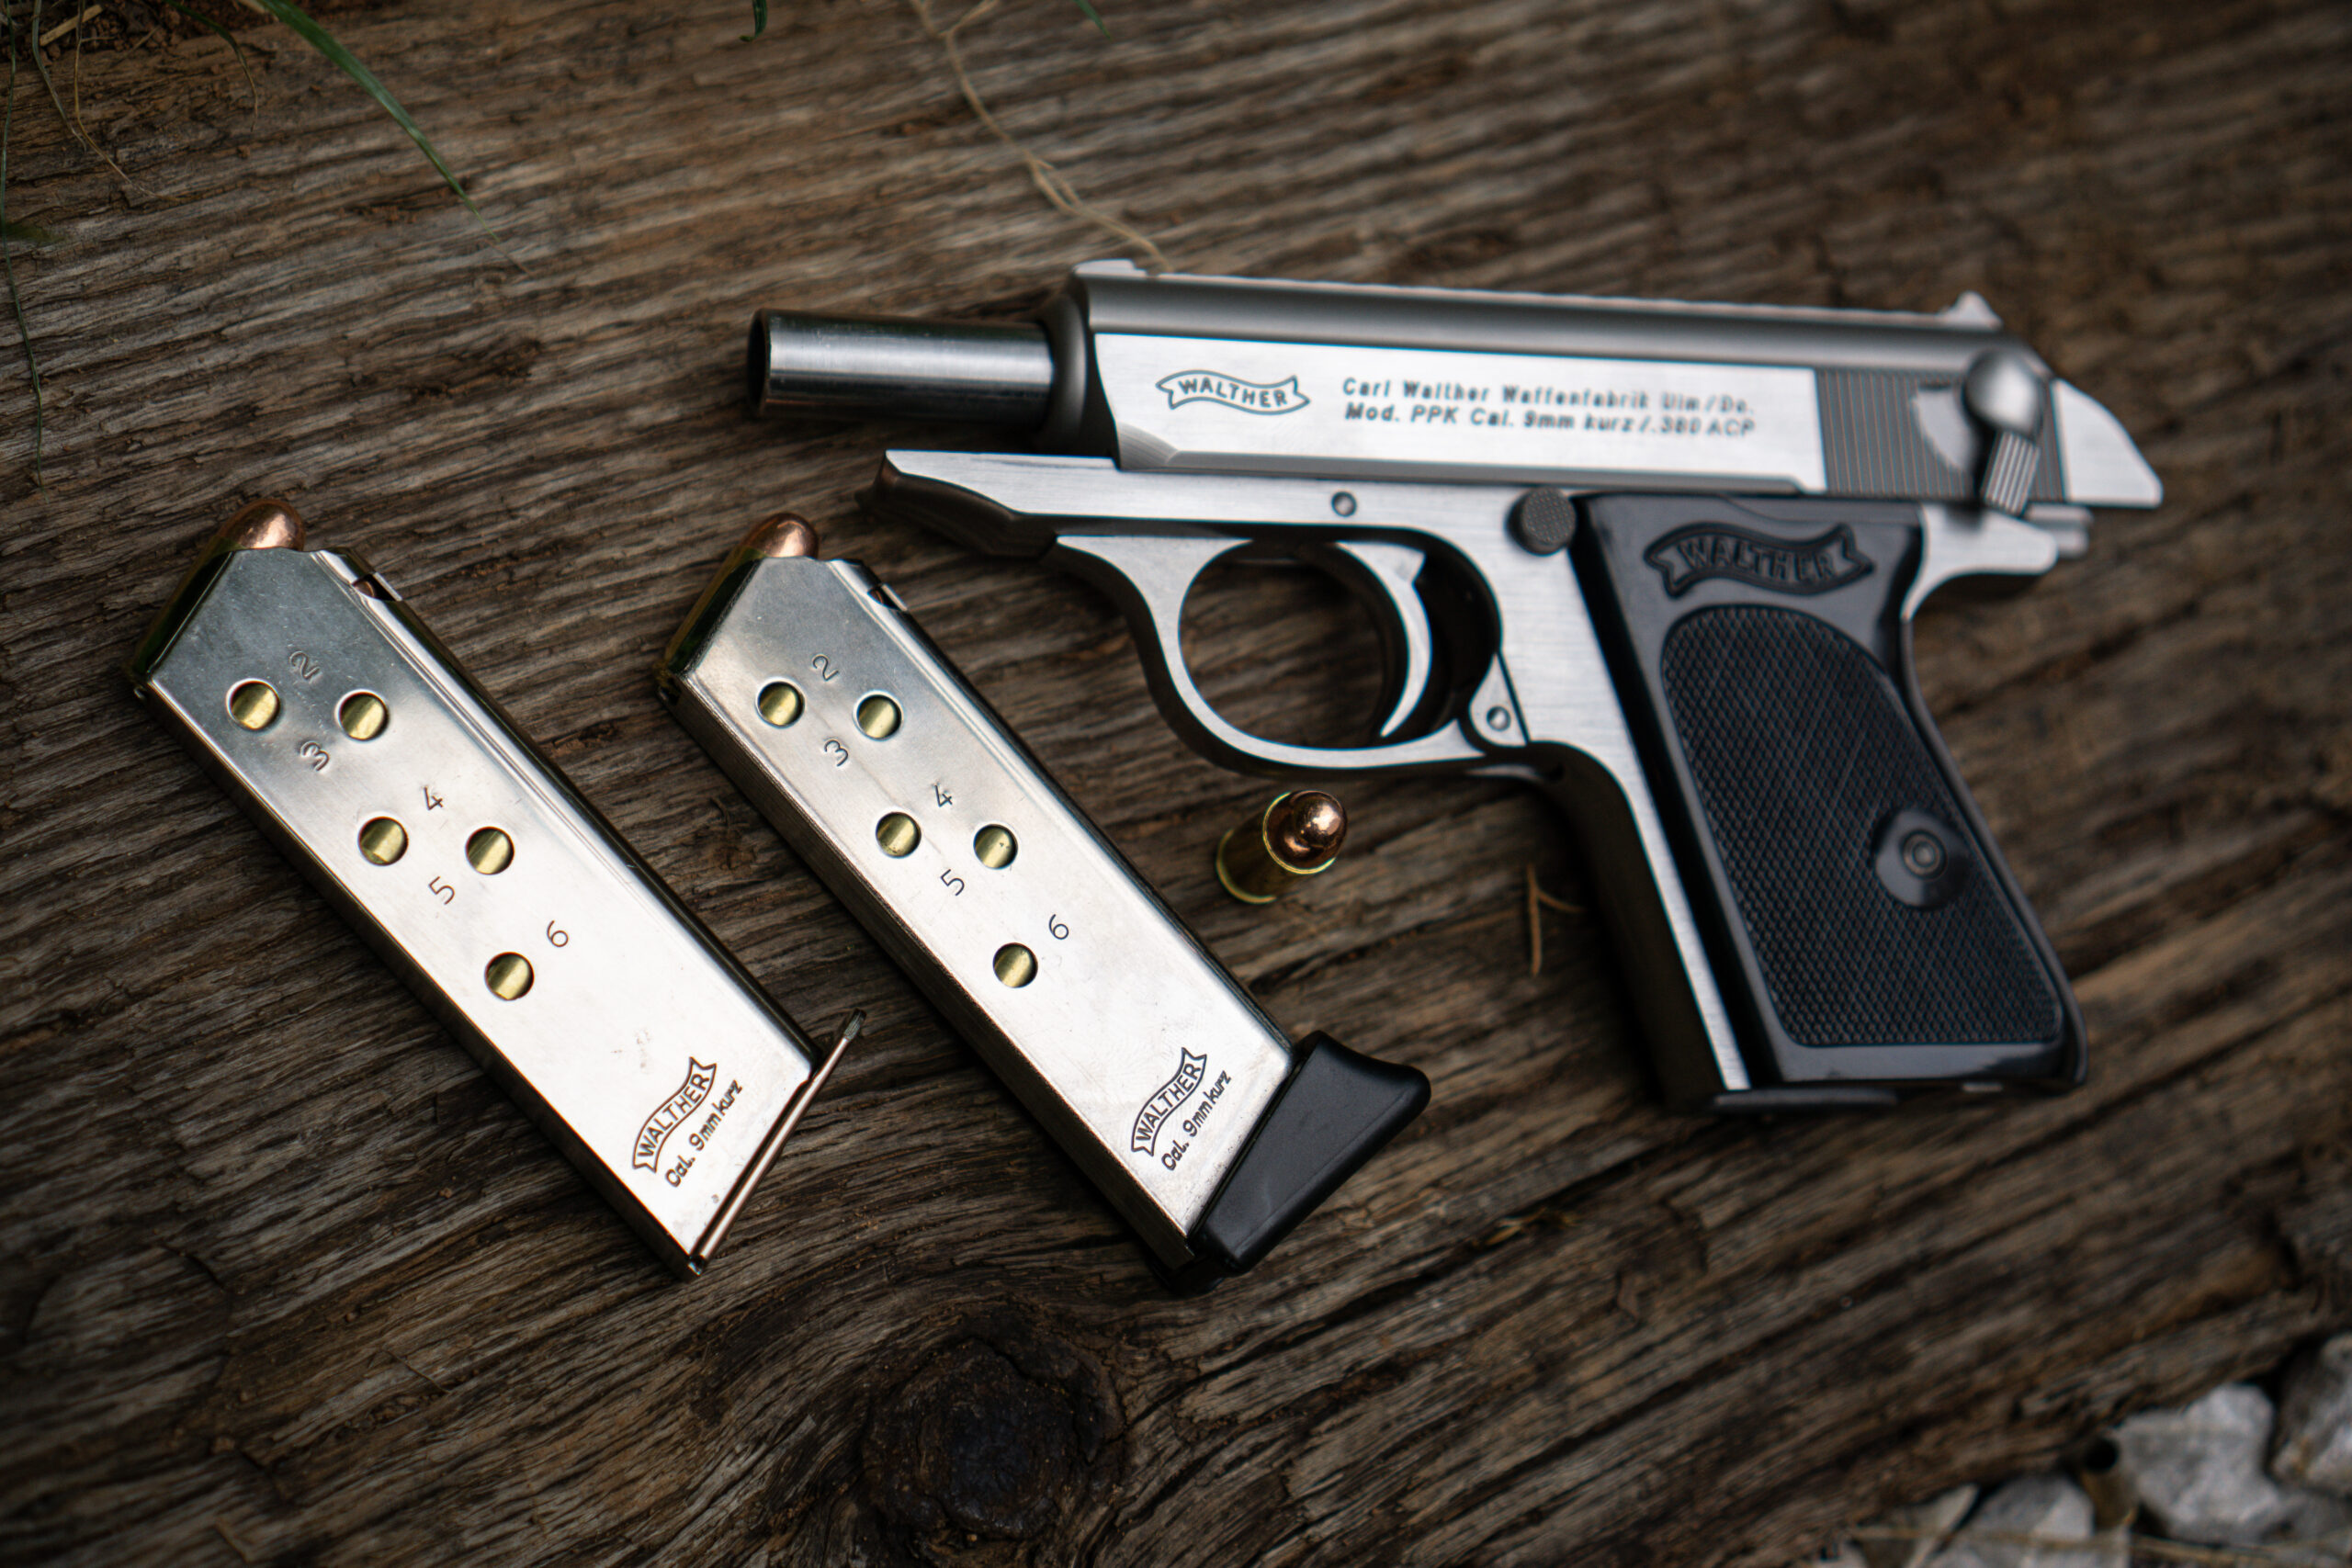 Walther PPK pistol reviewed with two magazines at a shooting bench